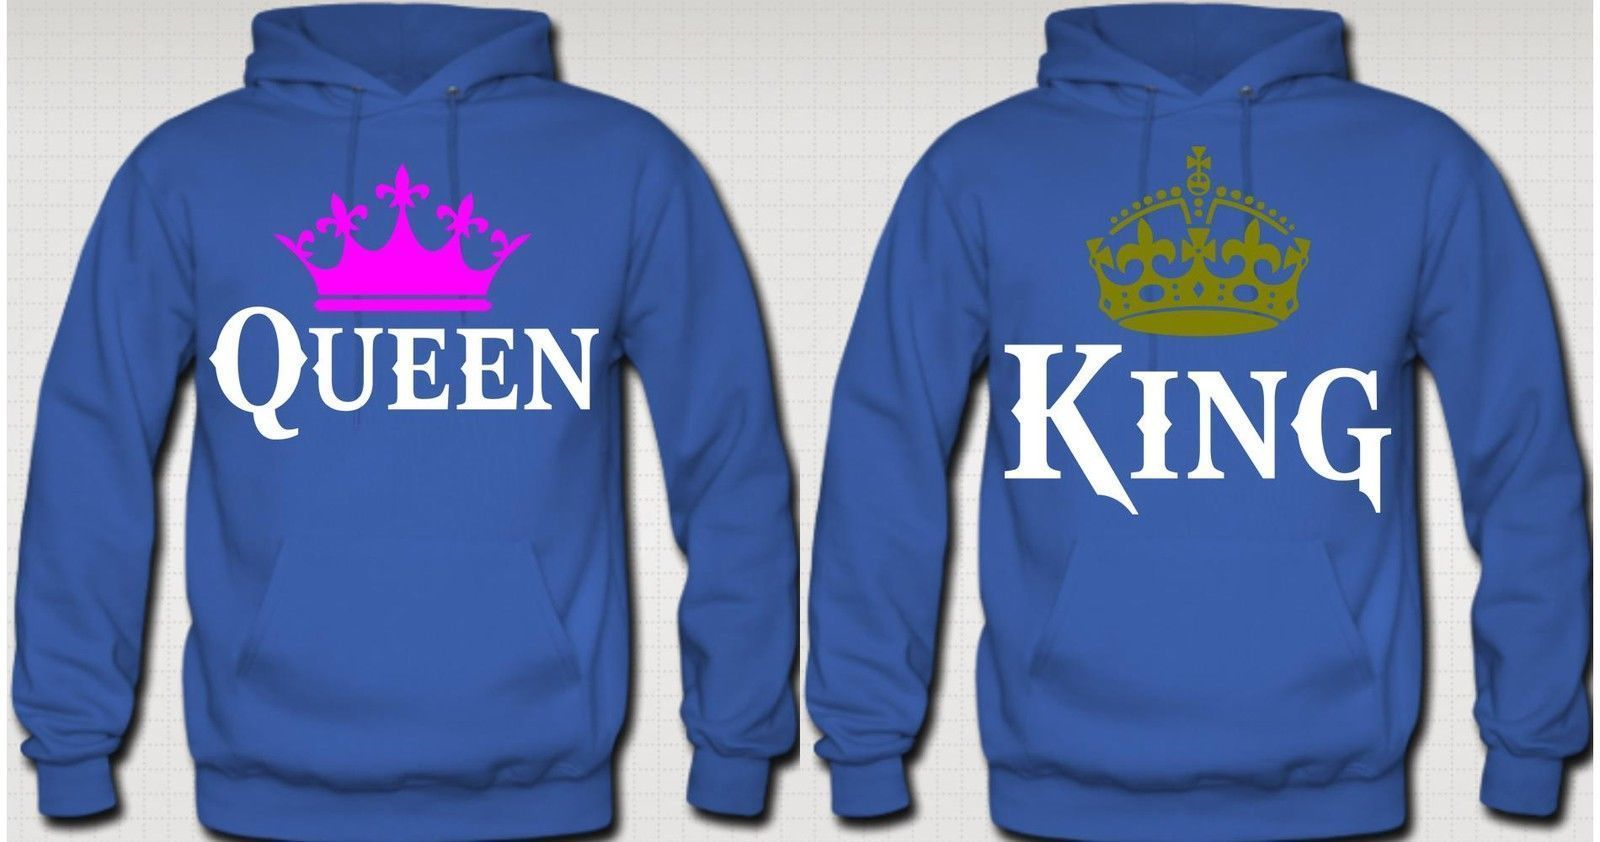 king and queen couple hoodies hats. Black Bedroom Furniture Sets. Home Design Ideas